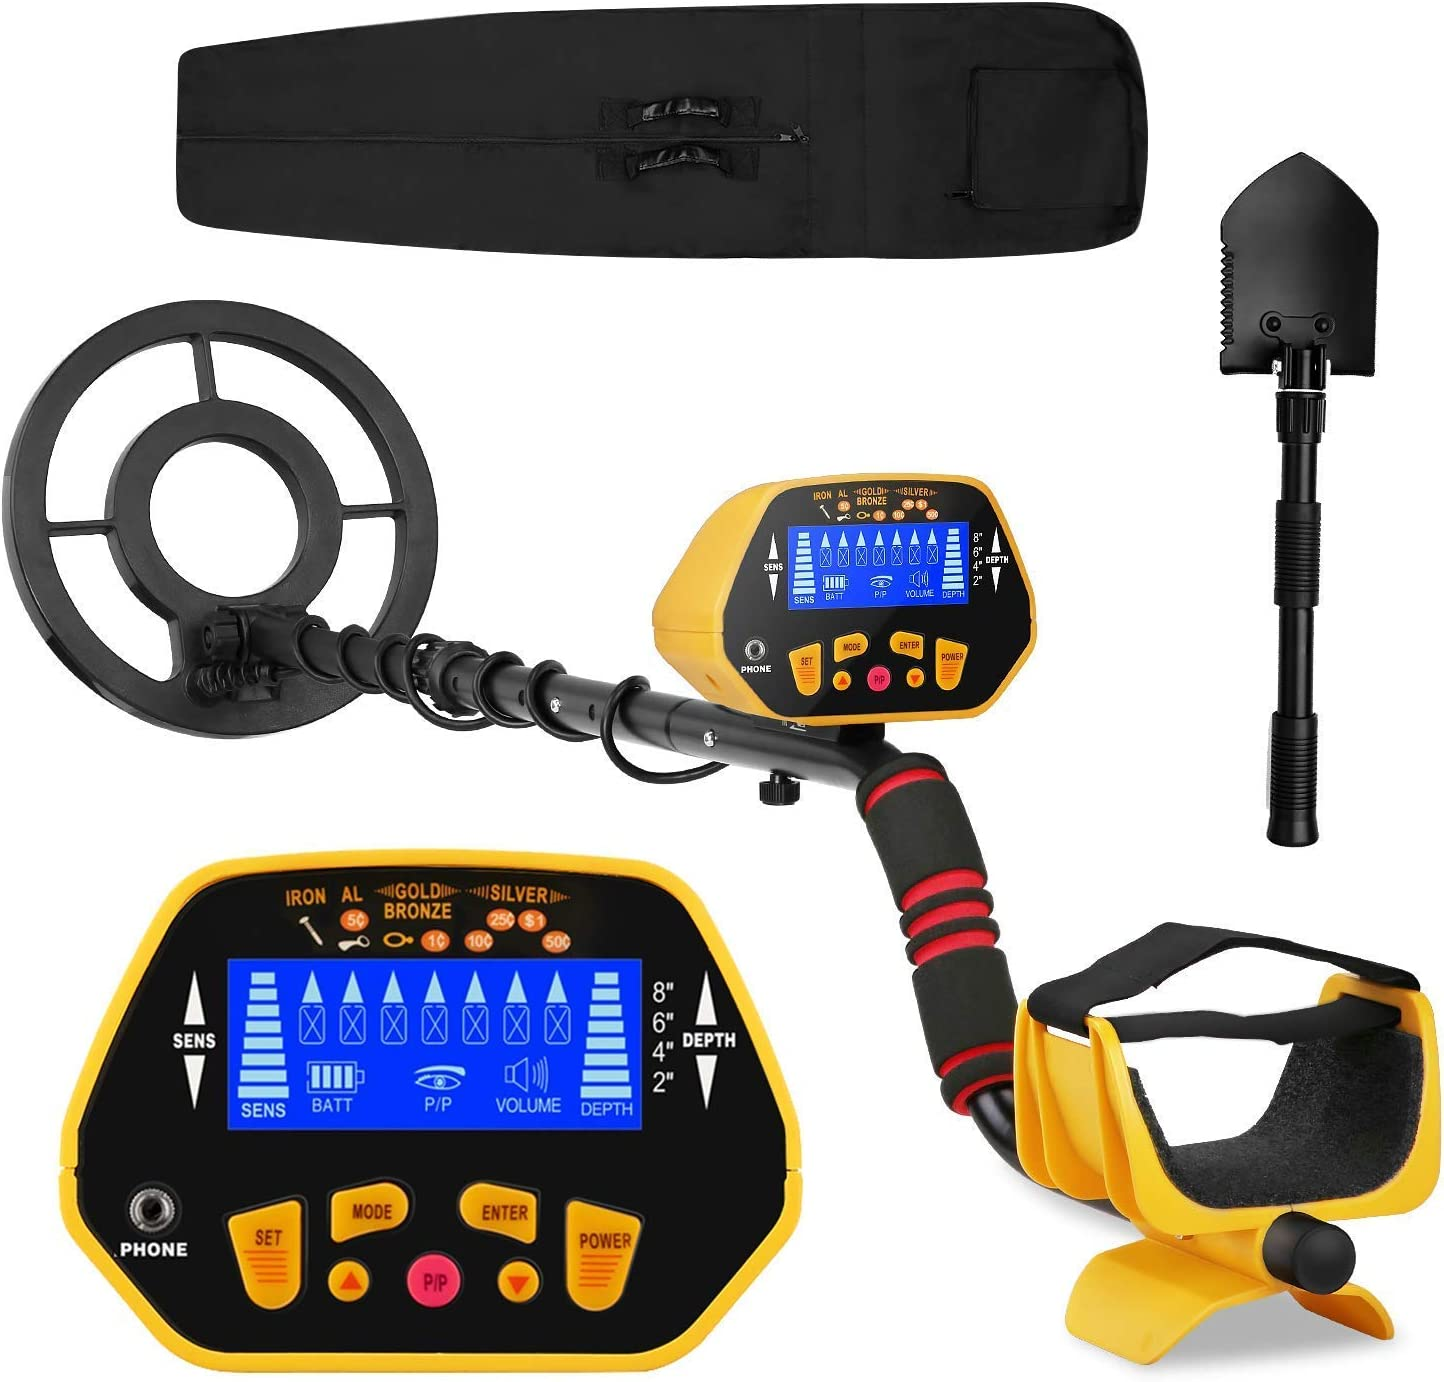 Canway Metal Detector High Accuracy Adjustable Waterproof Metal Finder, LCD Display with Light, Carrying Bag and Shovel Included, 7 Target Categories, Depth Indication, Audio Prompt, with P P Function